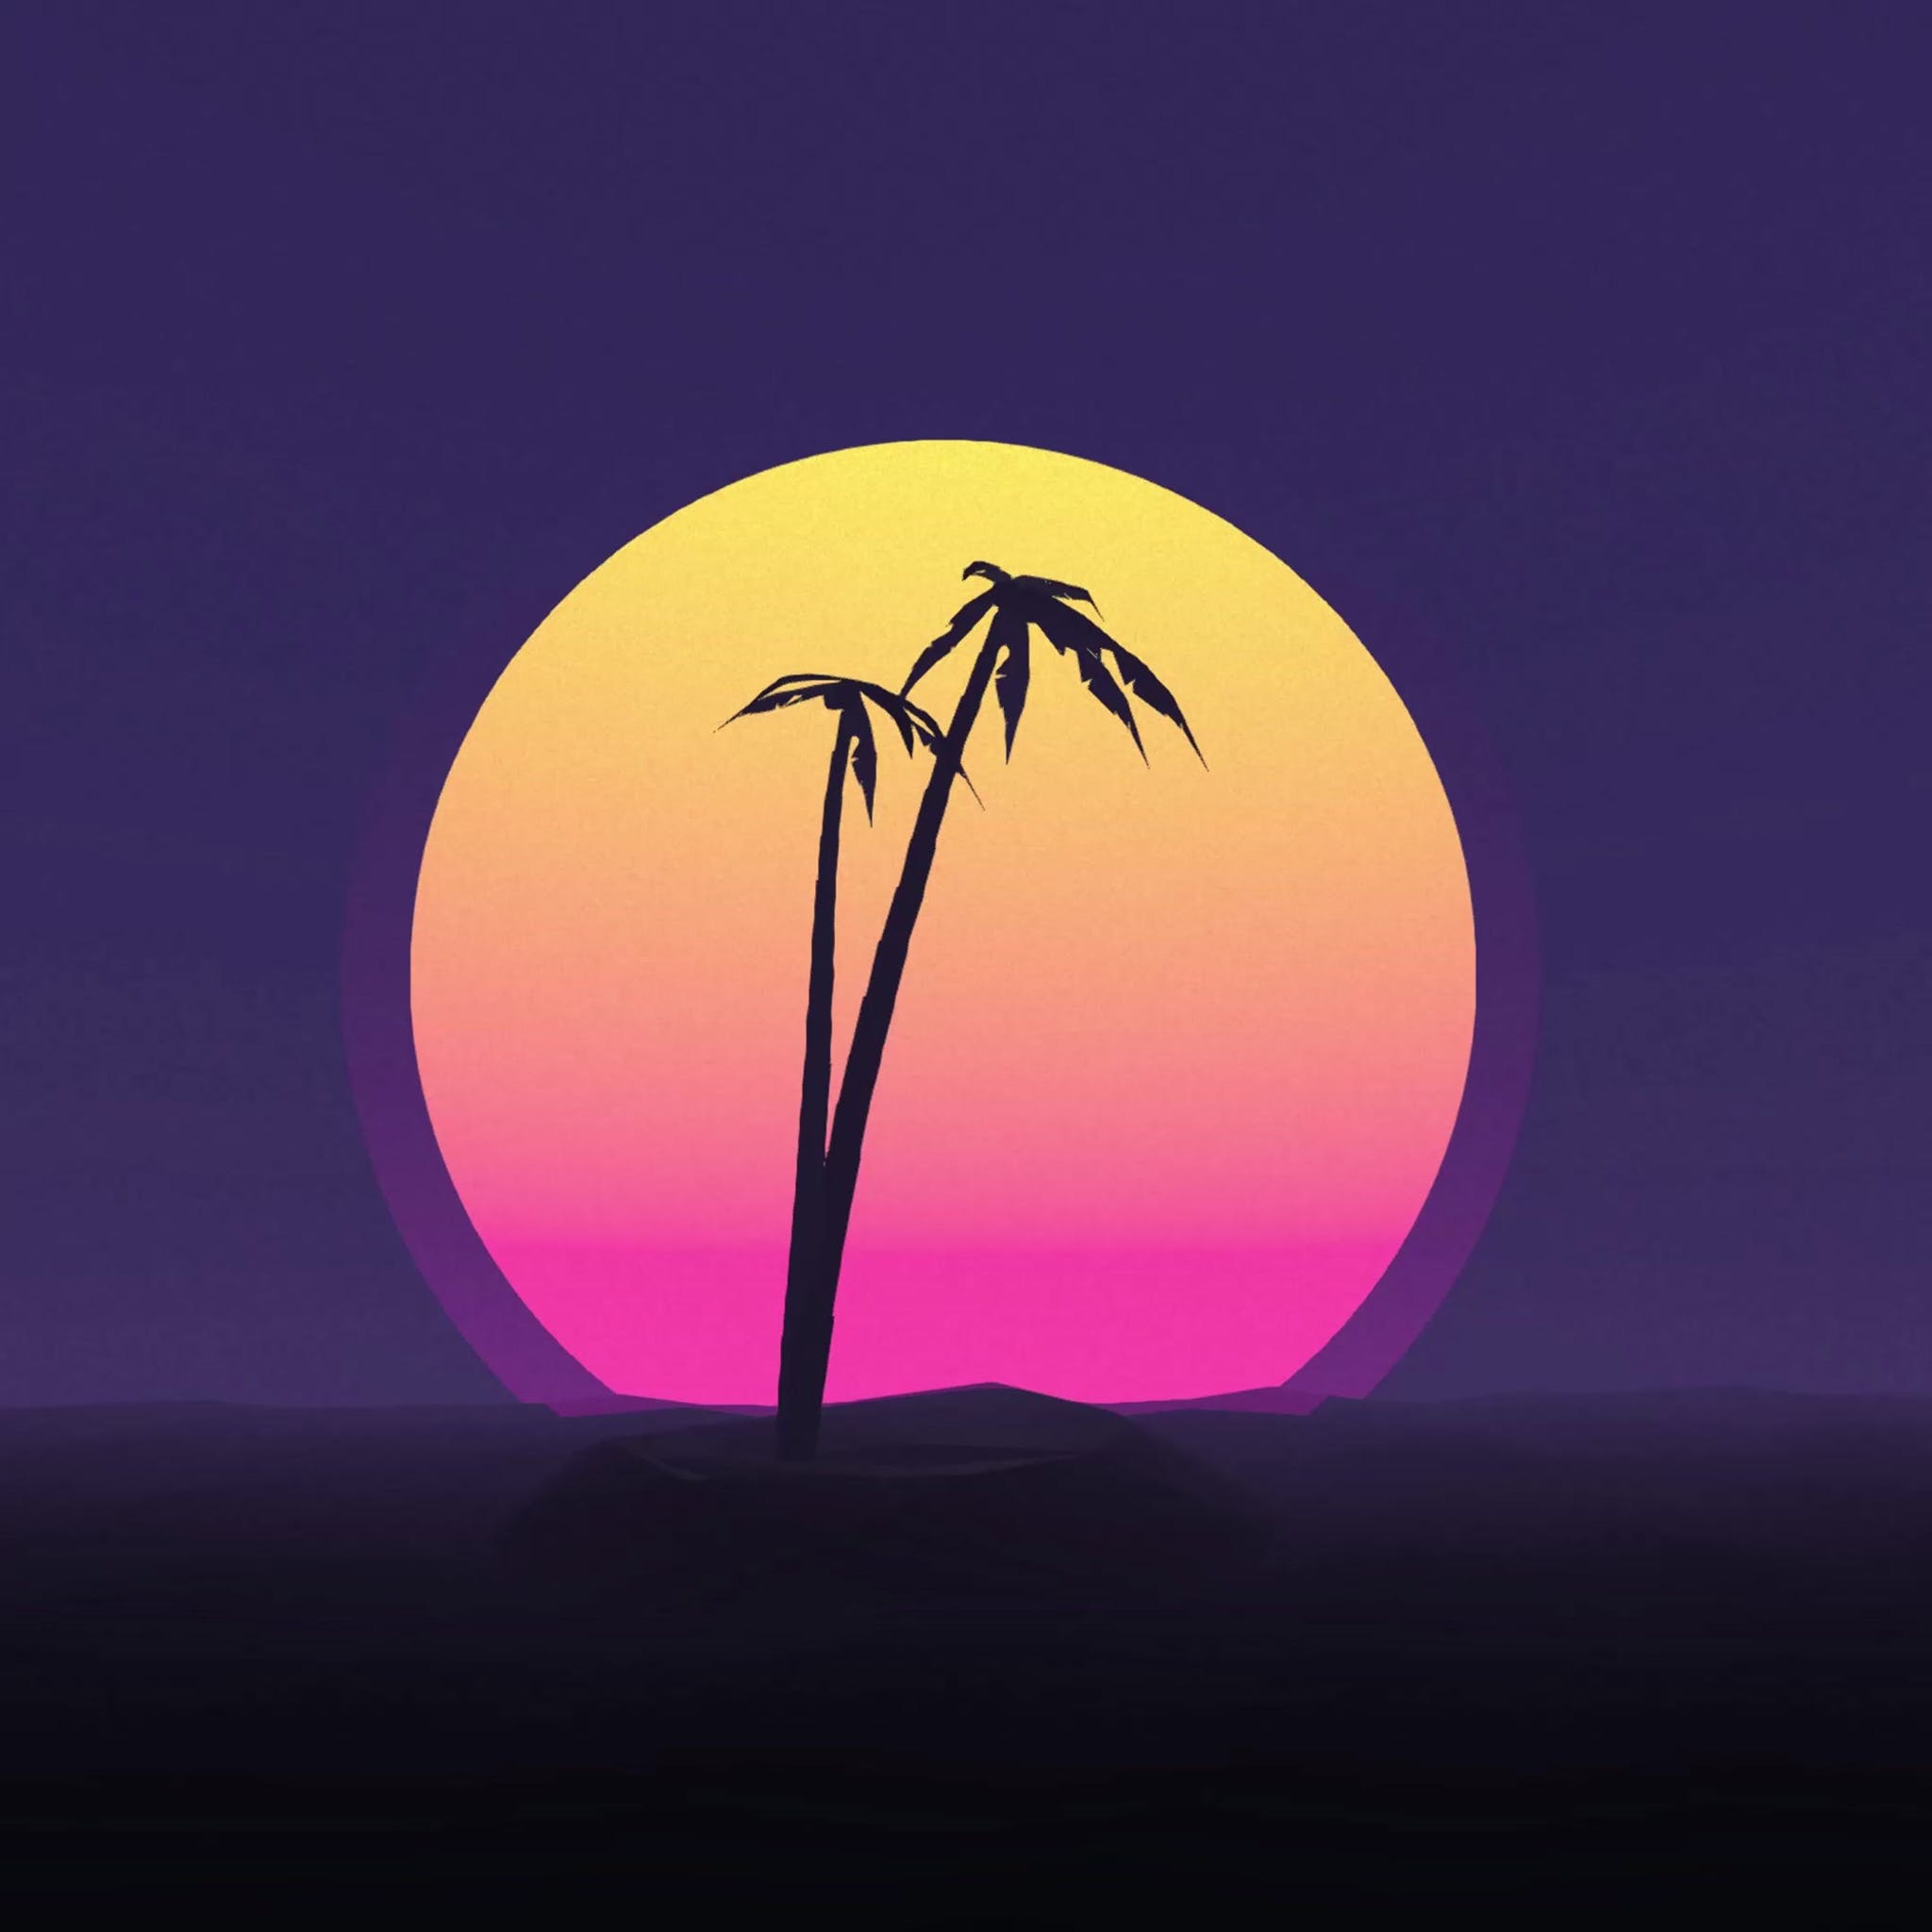 Silhouette of 2 palm trees with a big orange sun on the background